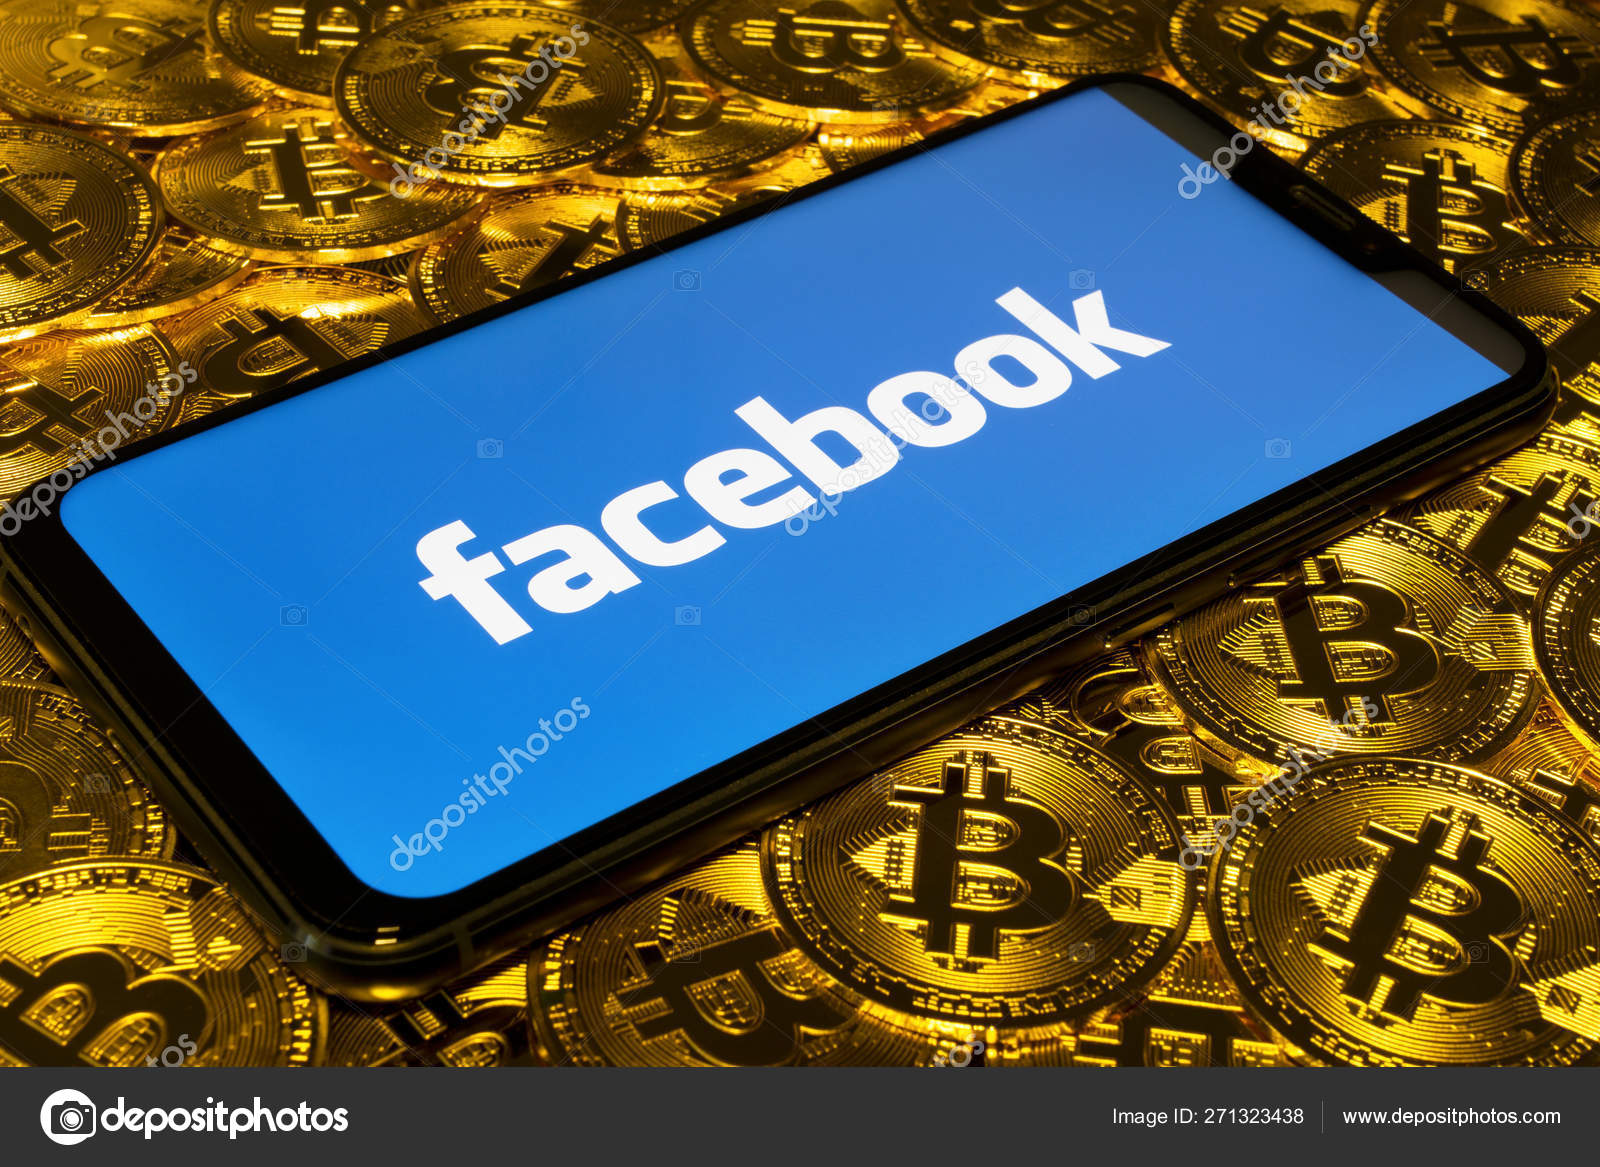 Gold Bitcoin Coins Pile Background Facebook Logo Smartphone